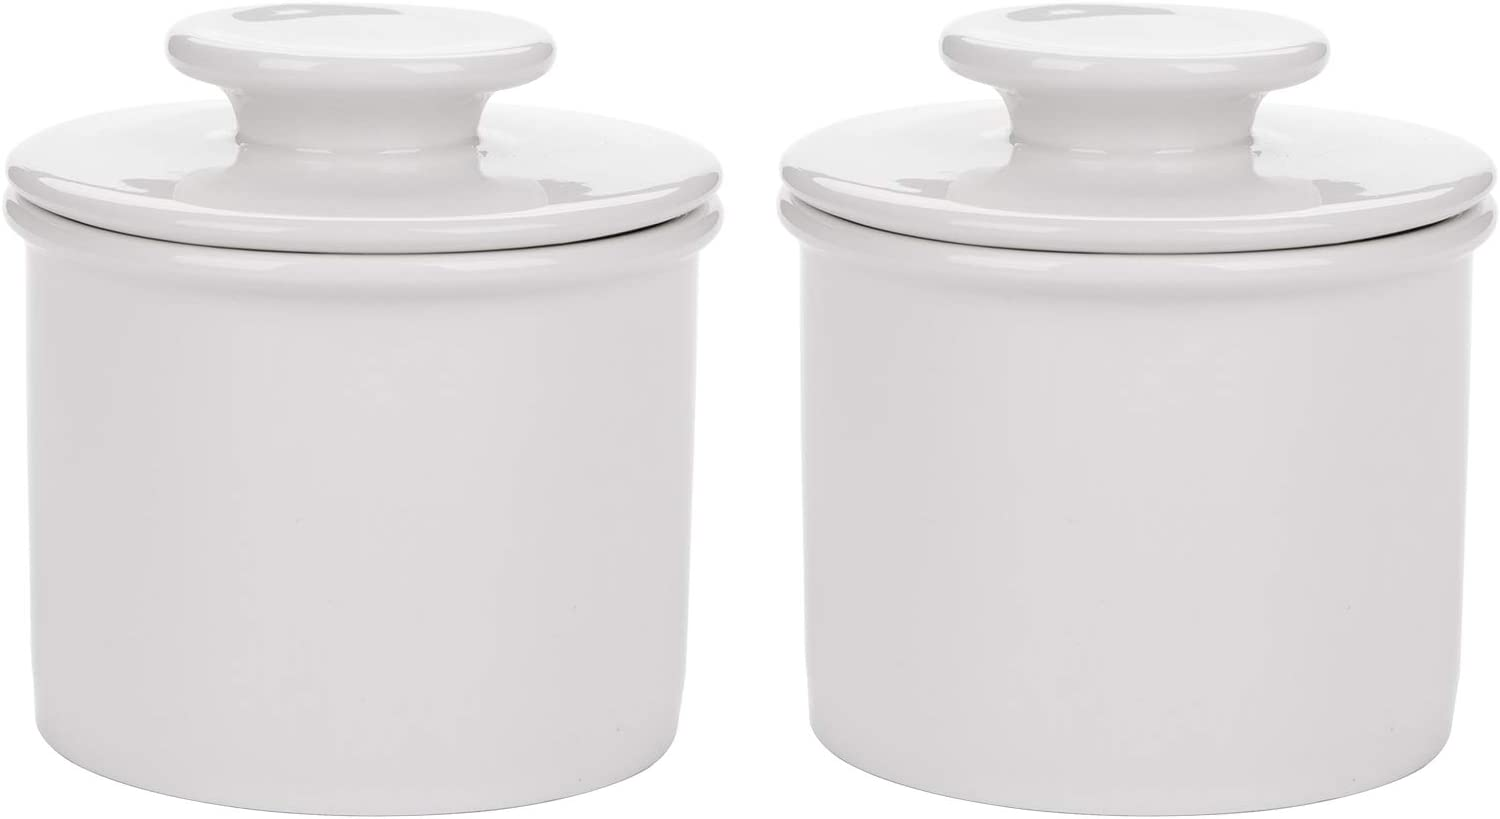 Bekith 2 Pack Porcelain Butter Keeper Crock, French Ceramic Butter Dish with Lid, Embossed Butter Container for Soft Butter, White